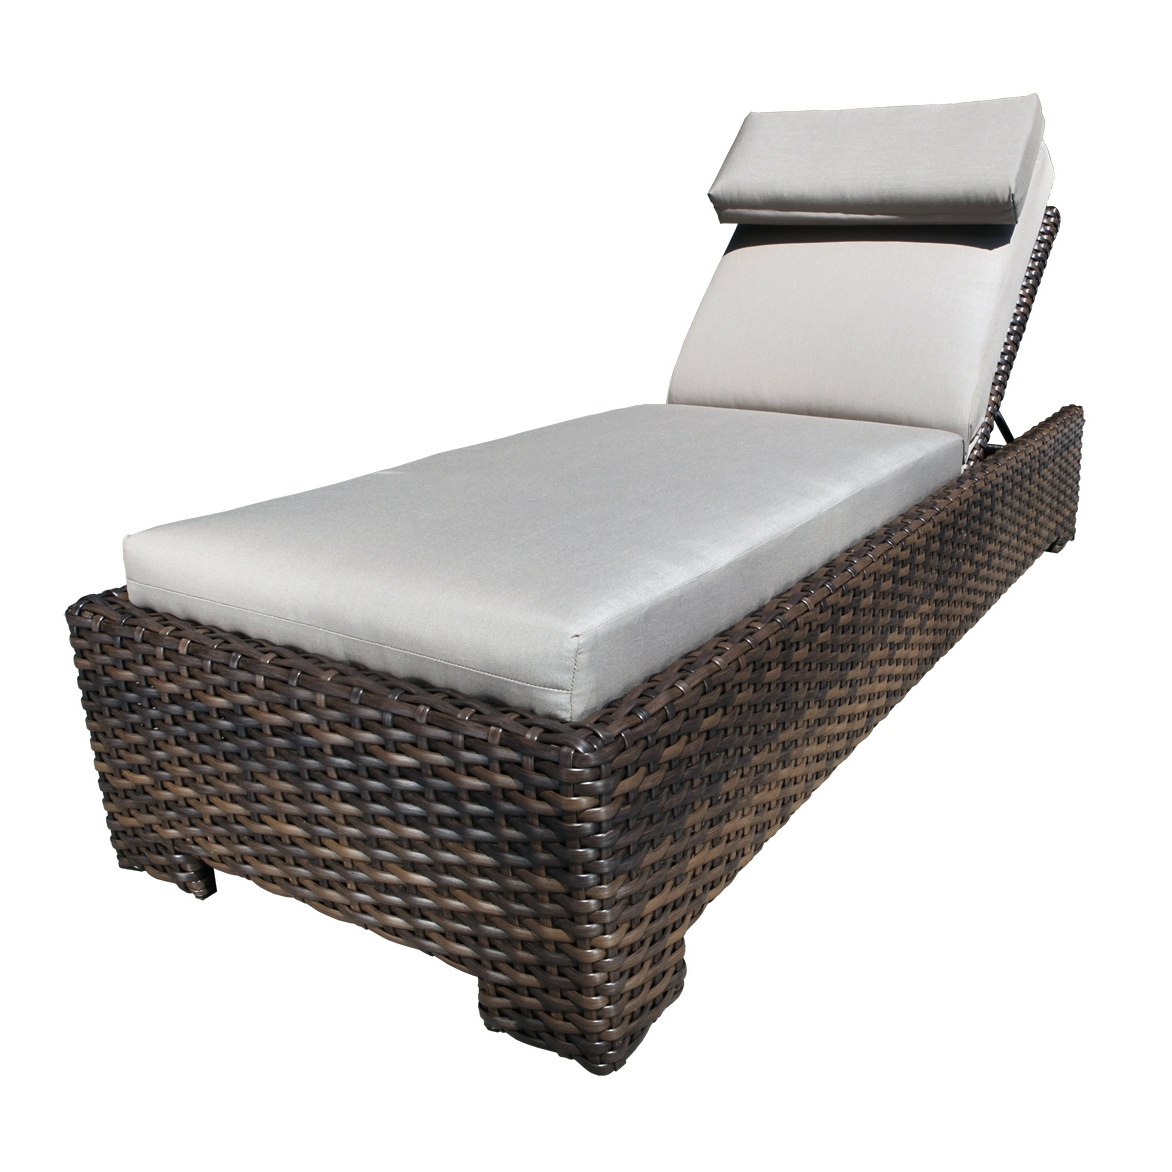 Boca Chaise Lounge Outdoor Chairs With Pillows In Fashionable Boca Chaise Lounge Chair Outdoor Pillow • Lounge Chairs Ideas (View 7 of 15)